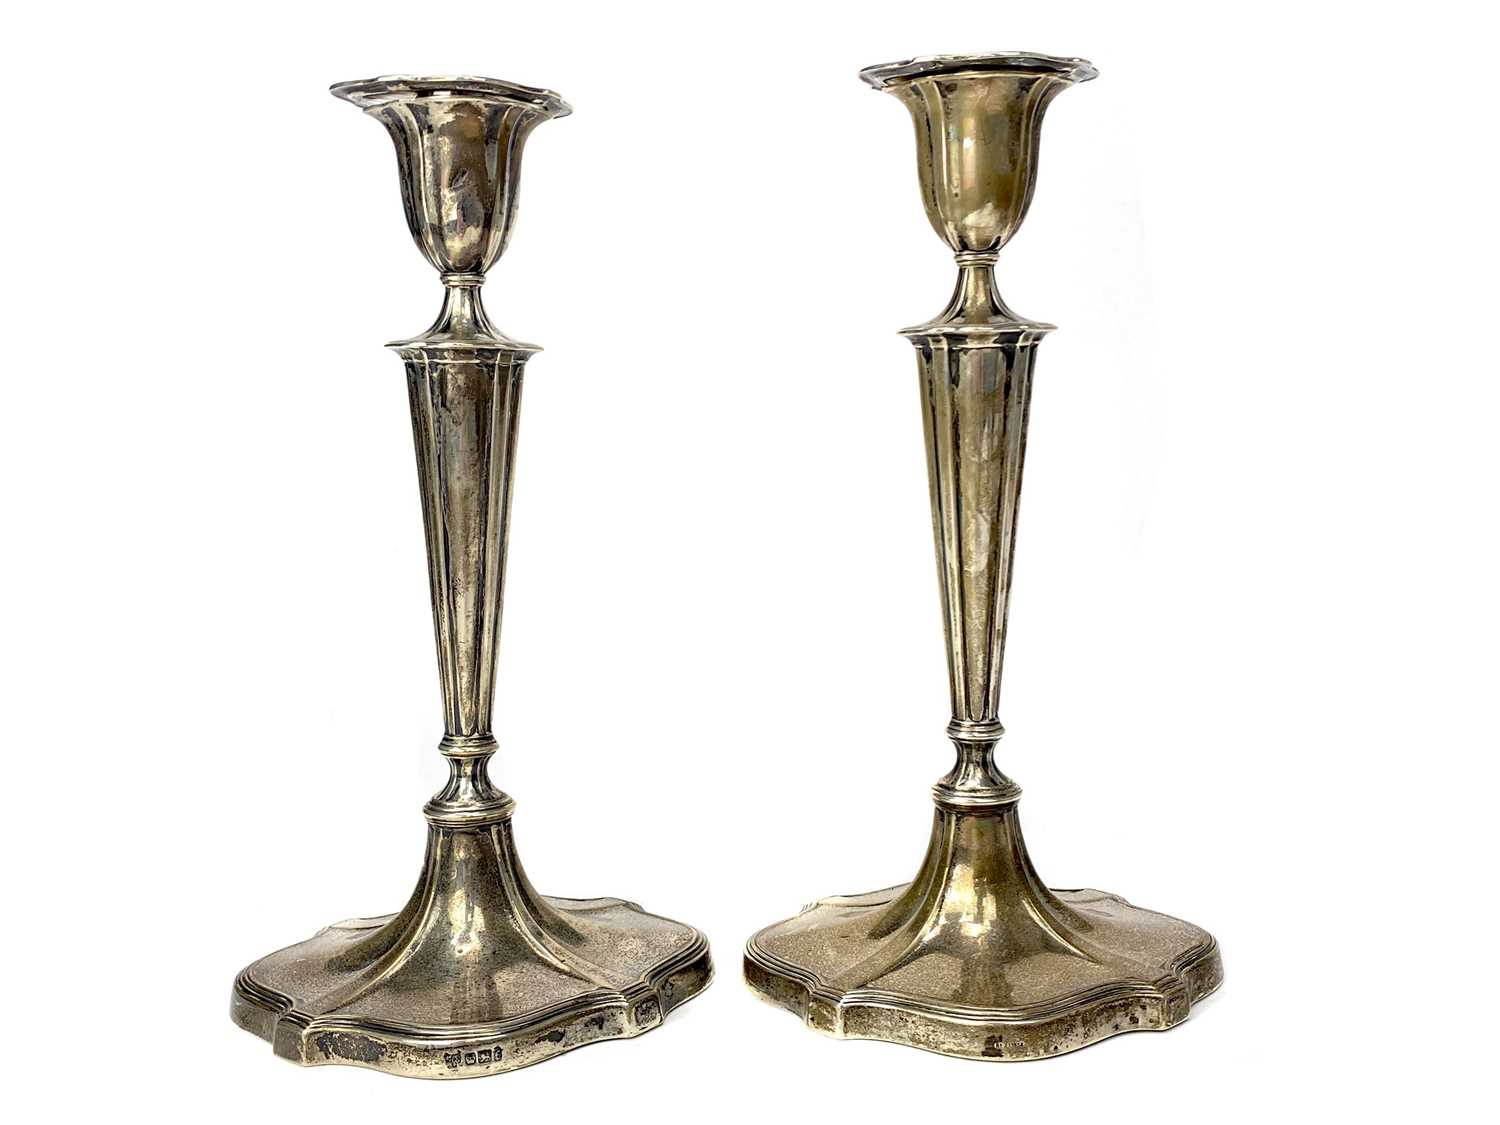 Lot 403 - A SET OF FOUR TABLE CANDLESTICKS OF NEOCLASSICAL DESIGN